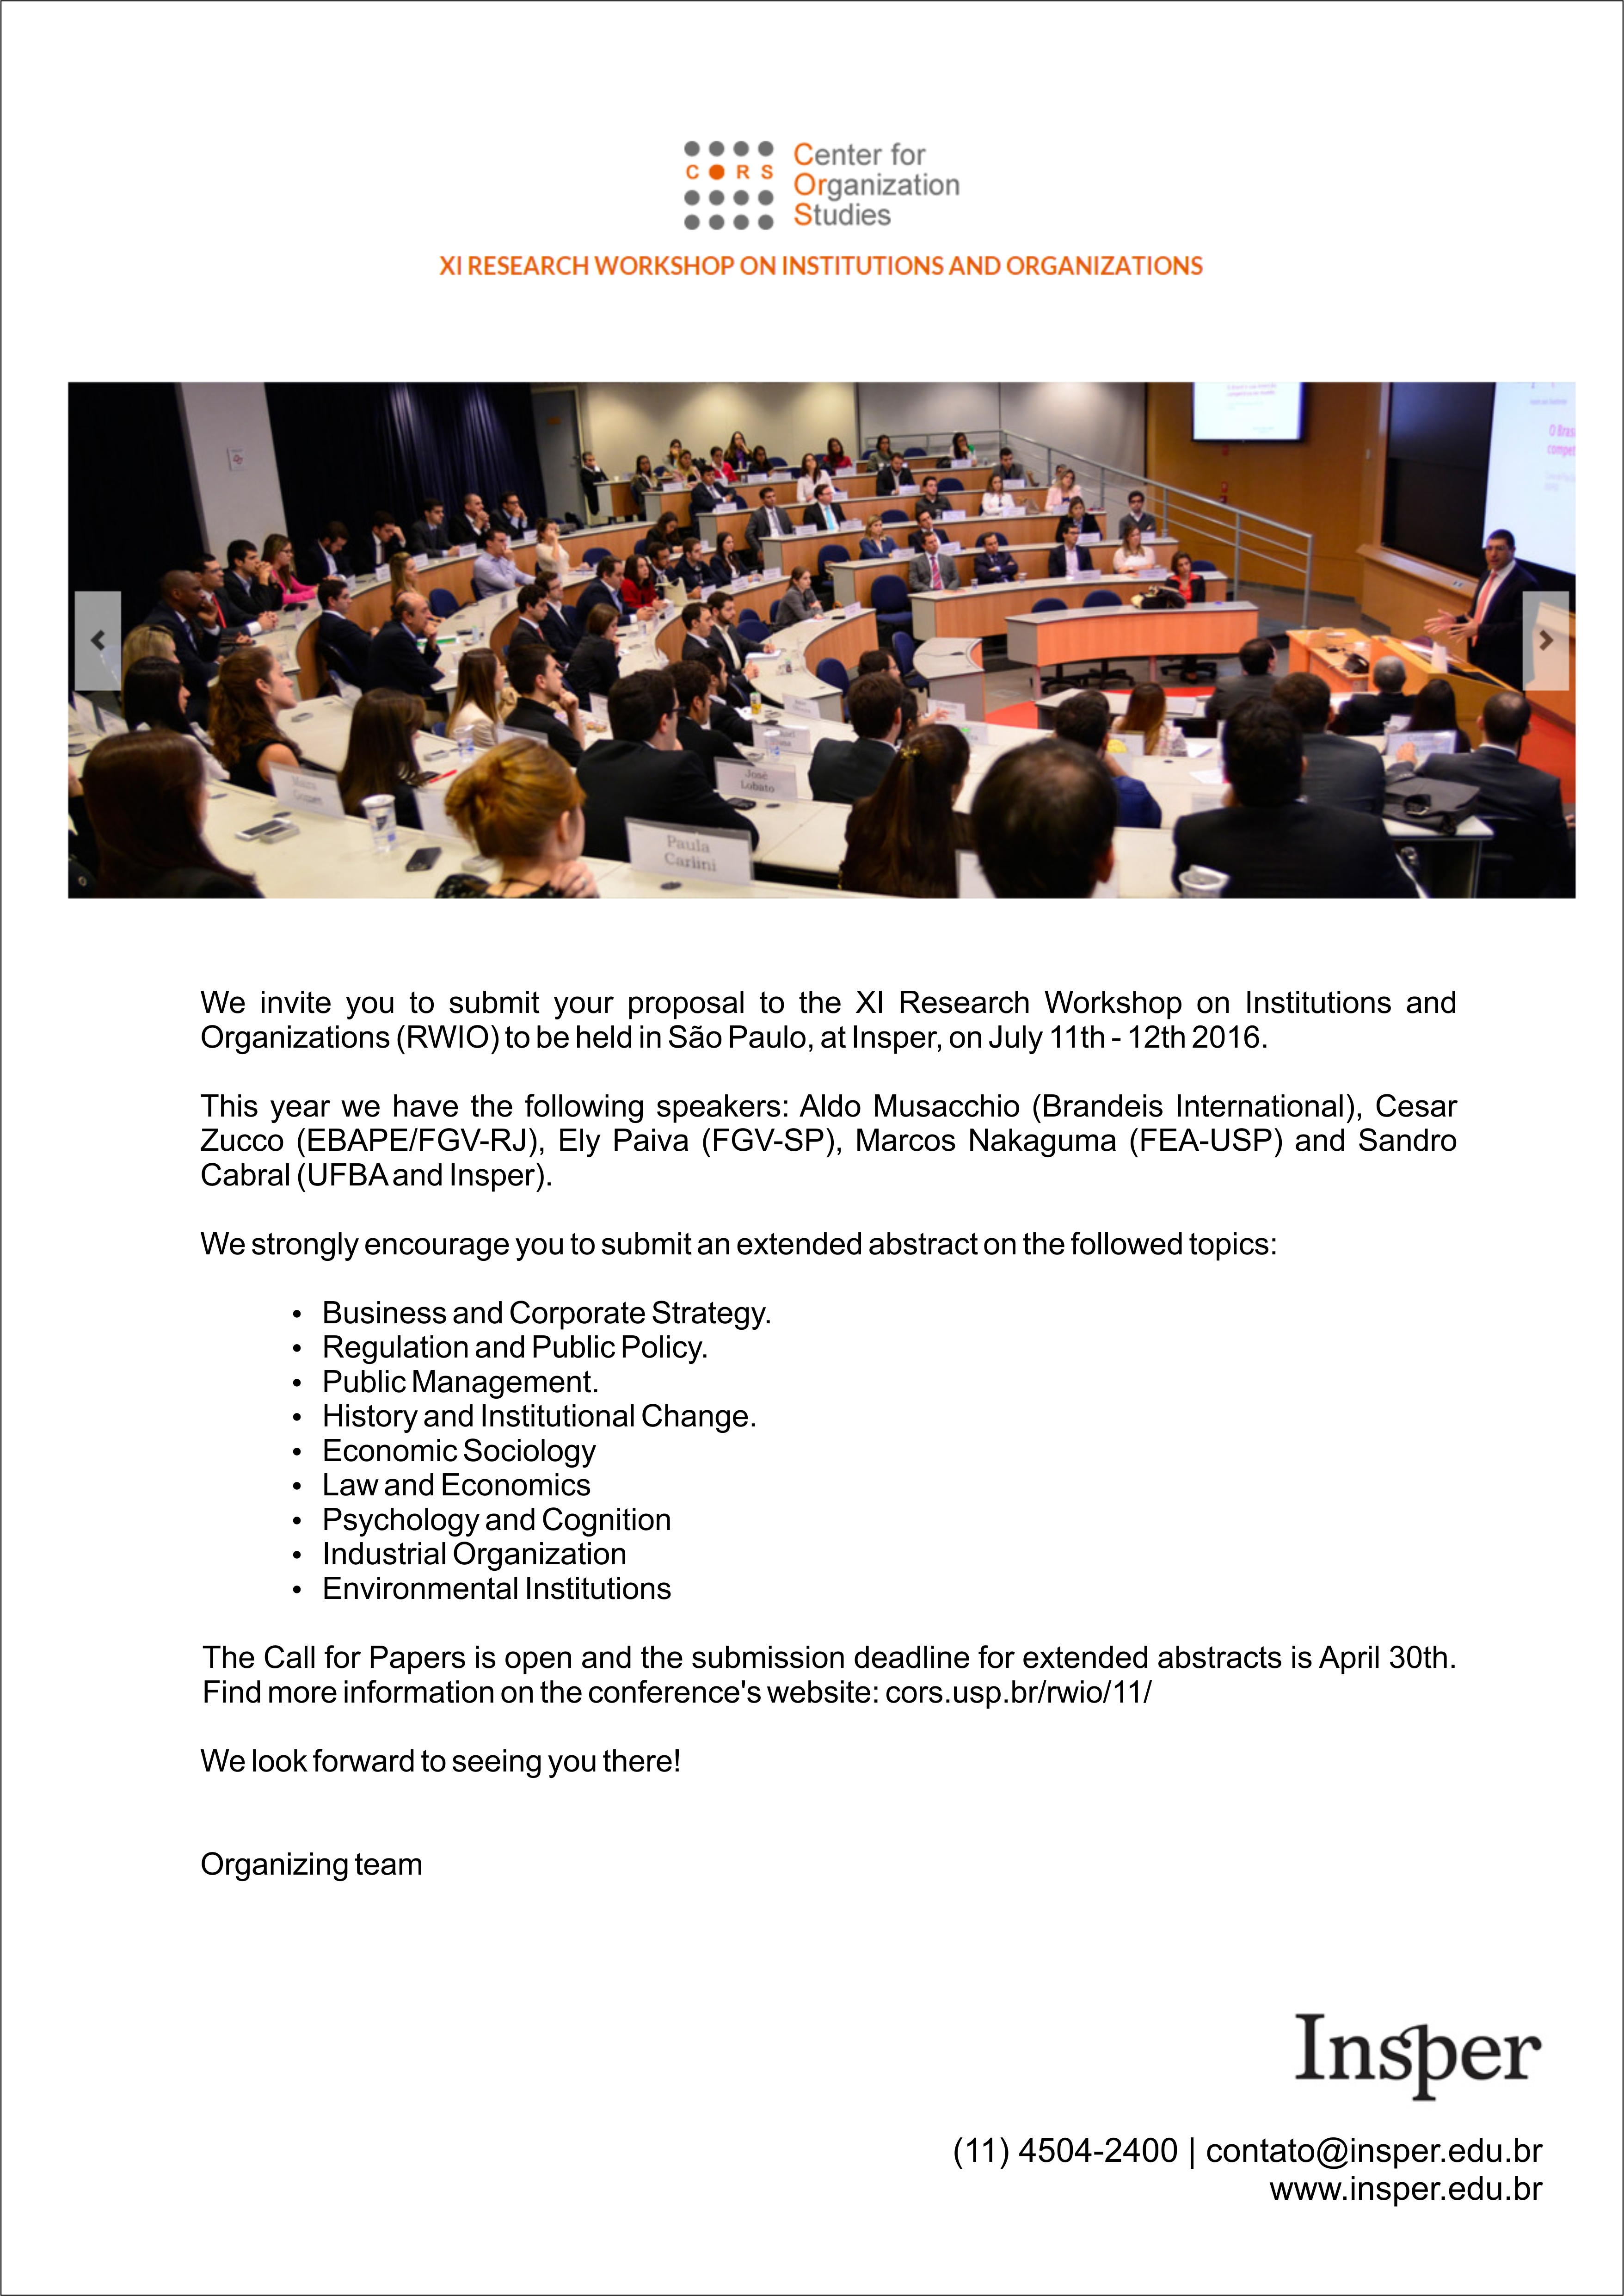 XI Research Workshop on Institutions and Organizations – RWIO